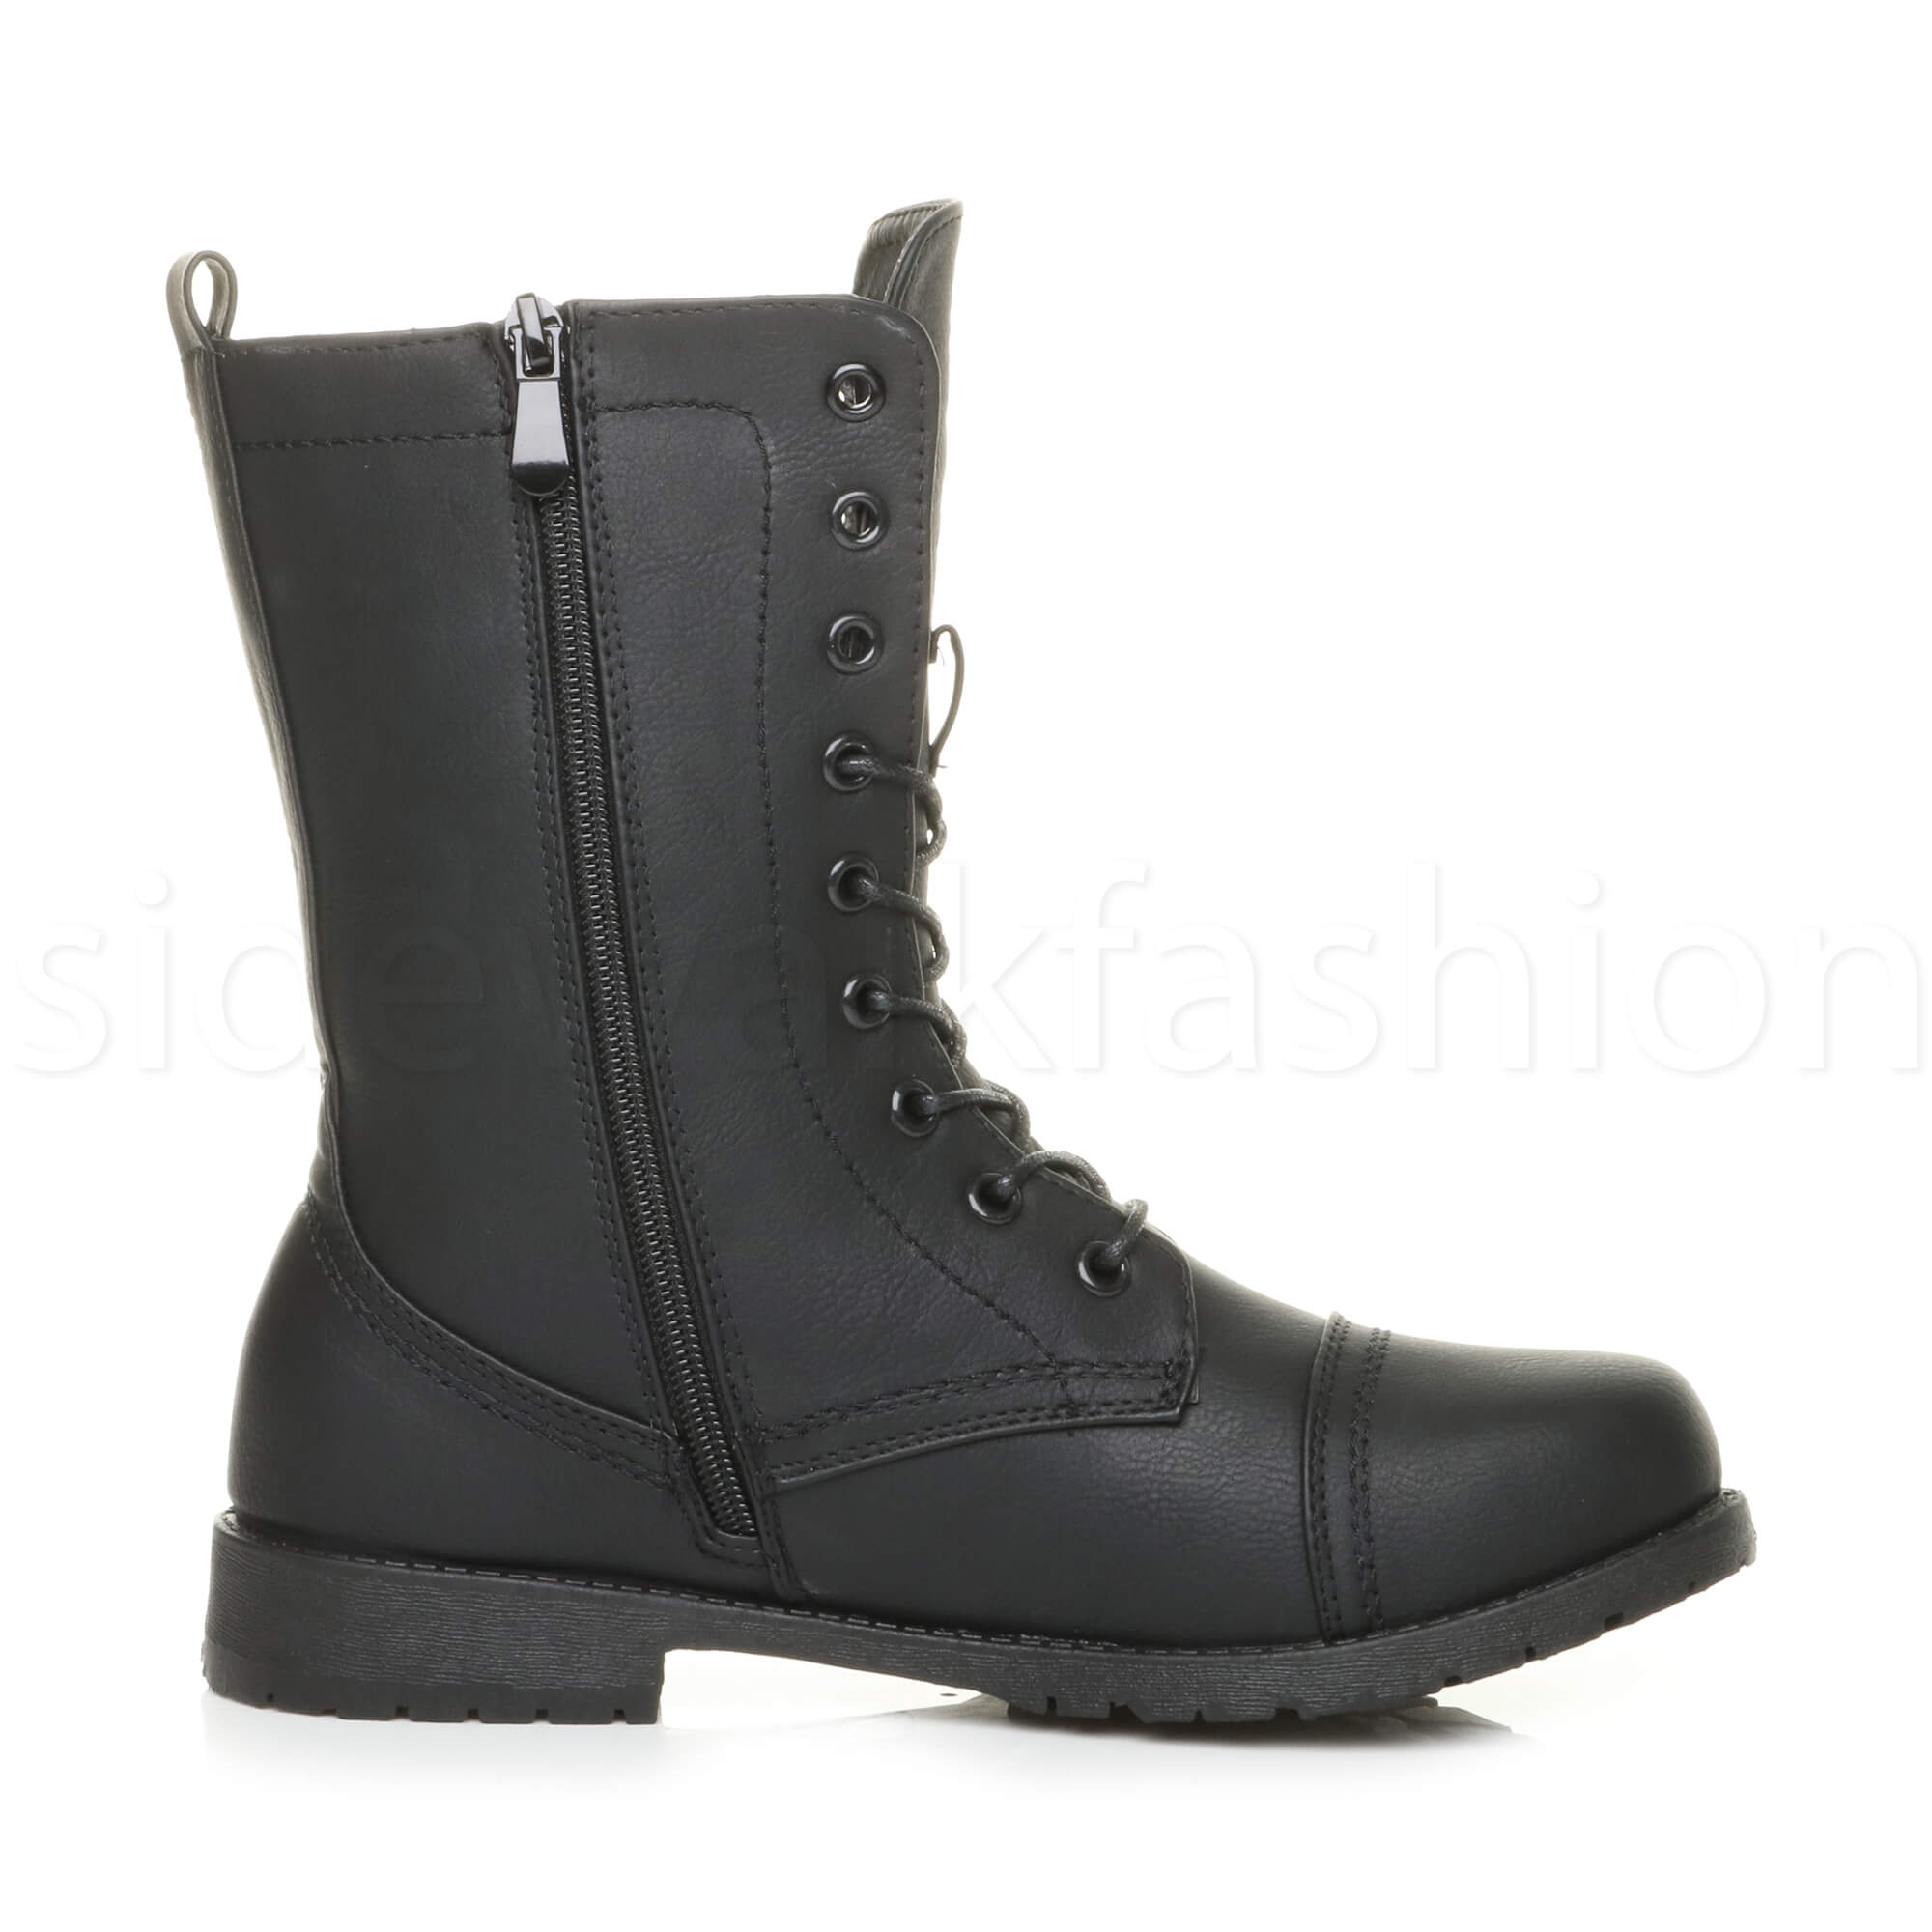 Womens-ladies-low-heel-flat-lace-up-zip-combat-biker-military-ankle-boots-size thumbnail 60